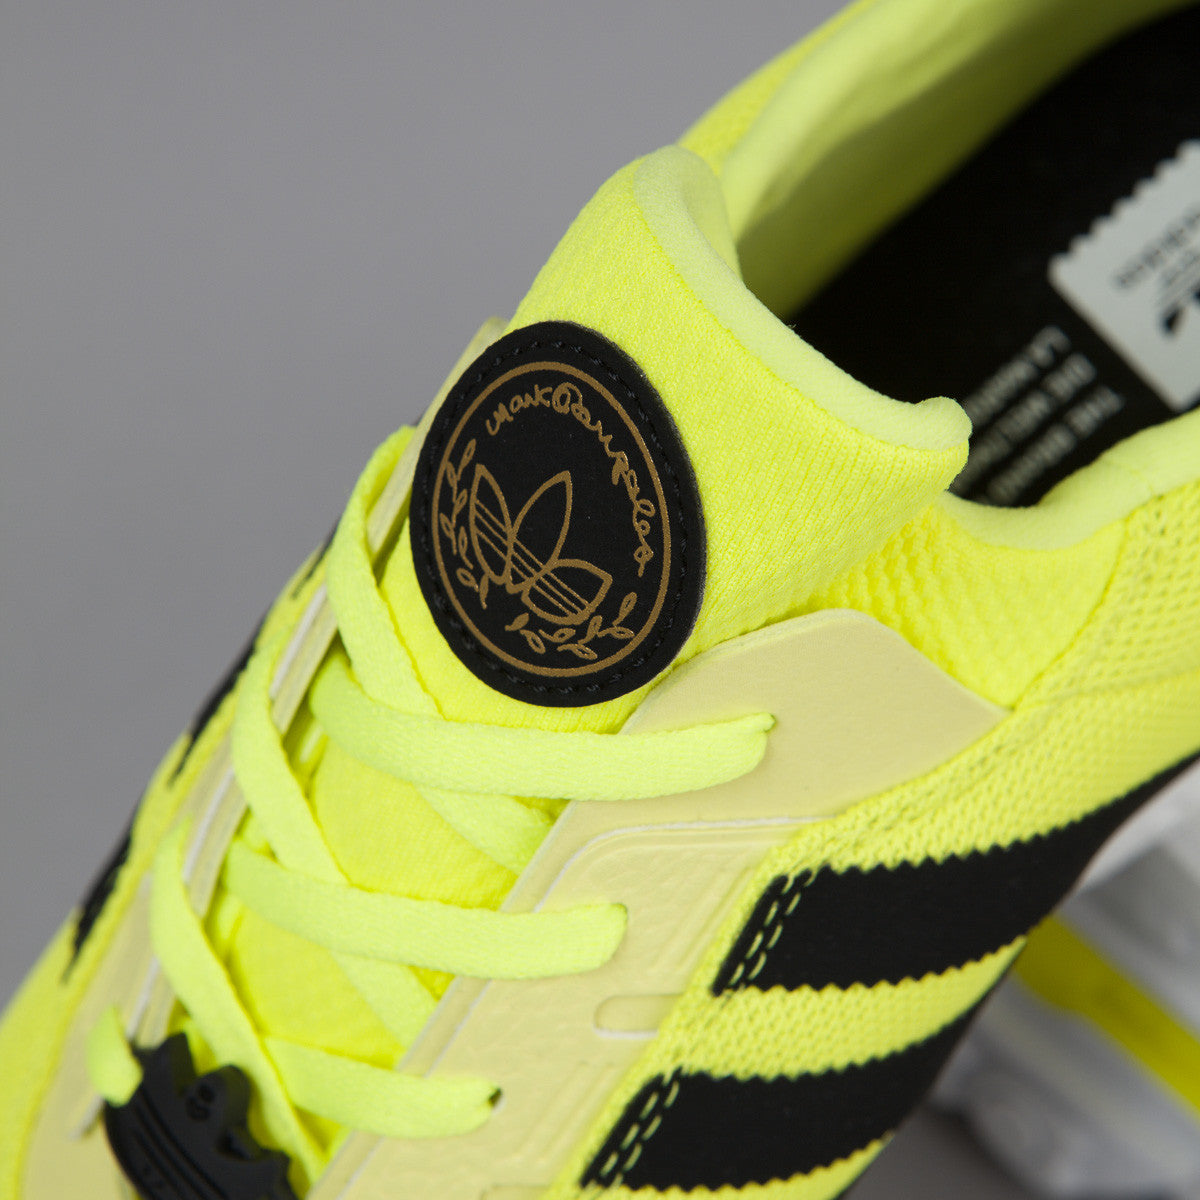 Adidas ZX Gonz Shoes - Solar Yellow / Core Black / FTW White